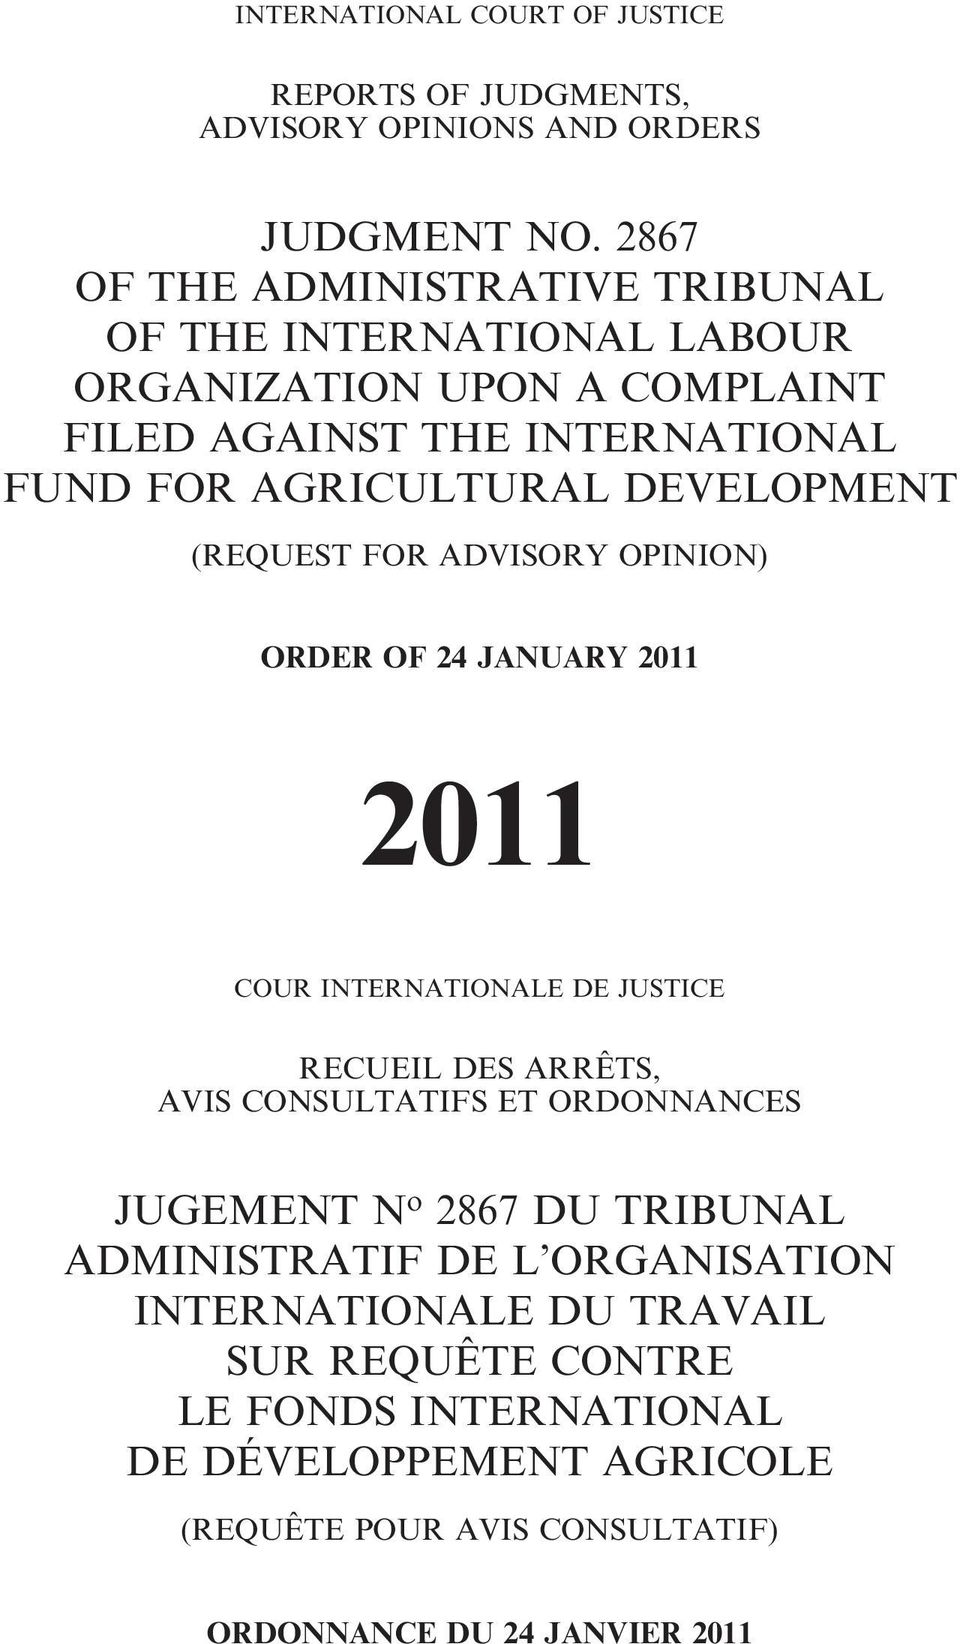 DEVELOPMENT (REQUEST FOR ADVISORY OPINION) ORDER OF 24 JANUARY 2011 2011 COUR INTERNATIONALE DE JUSTICE RECUEIL DES ARRÊTS, AVIS CONSULTATIFS ET